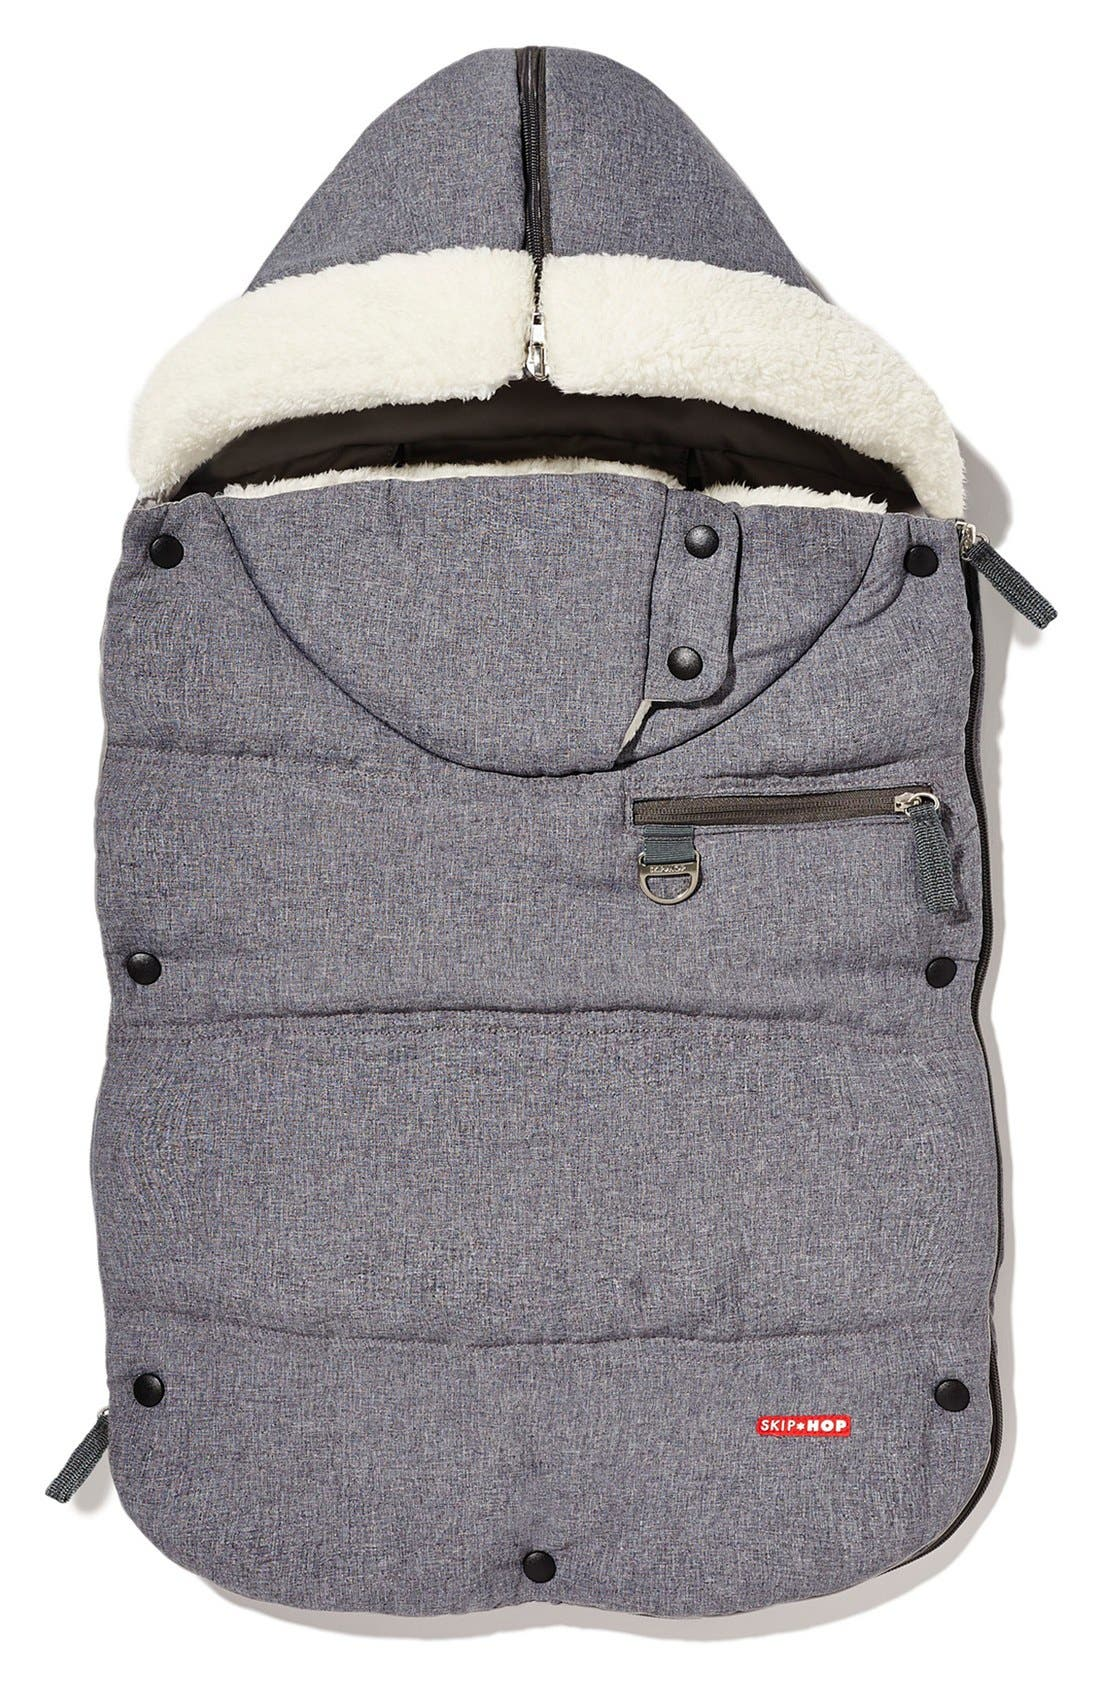 'Stroll & Go Three Season' Hooded Windproof & Water Resistant Footmuff,                         Main,                         color, Heather Grey